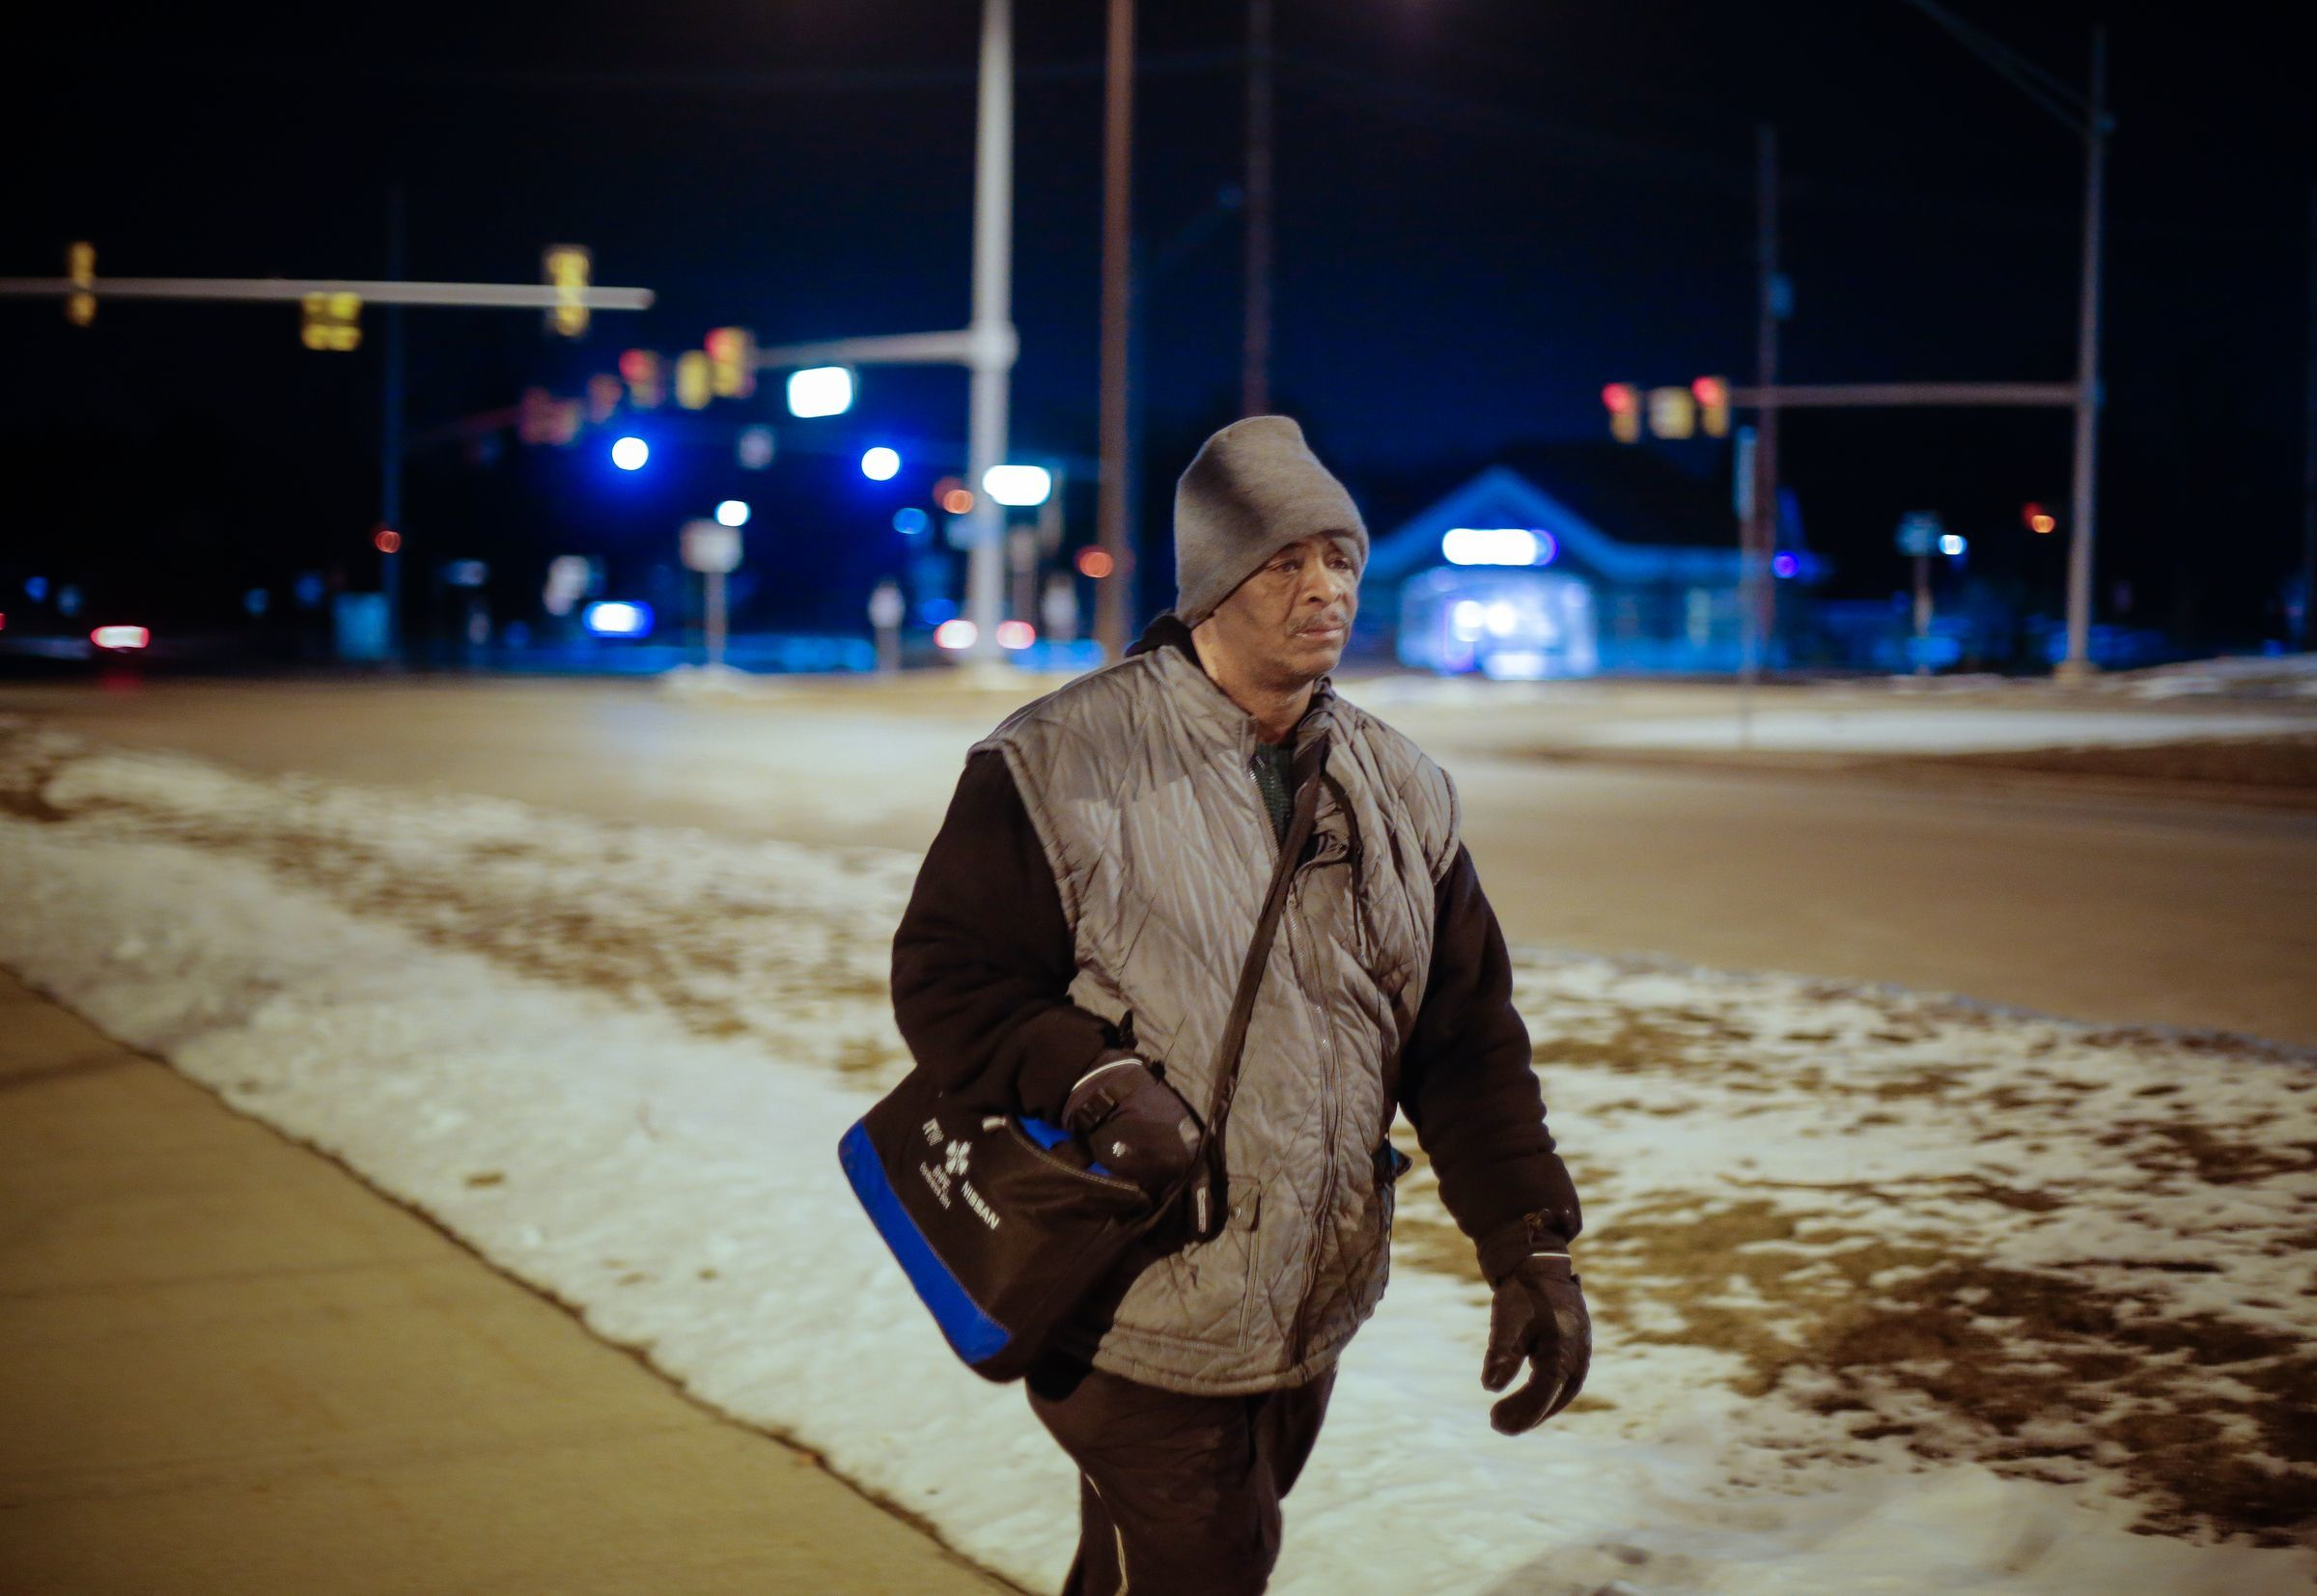 James Robertson makes his way along Crooks Road after working his shift at Schain Mold & Engineering in Rochester Hills on Friday January 9, 2015. Robertson's story of walking 21 miles for work shined a spotlight on southeast Michigan's dysfunctional public transportation system.